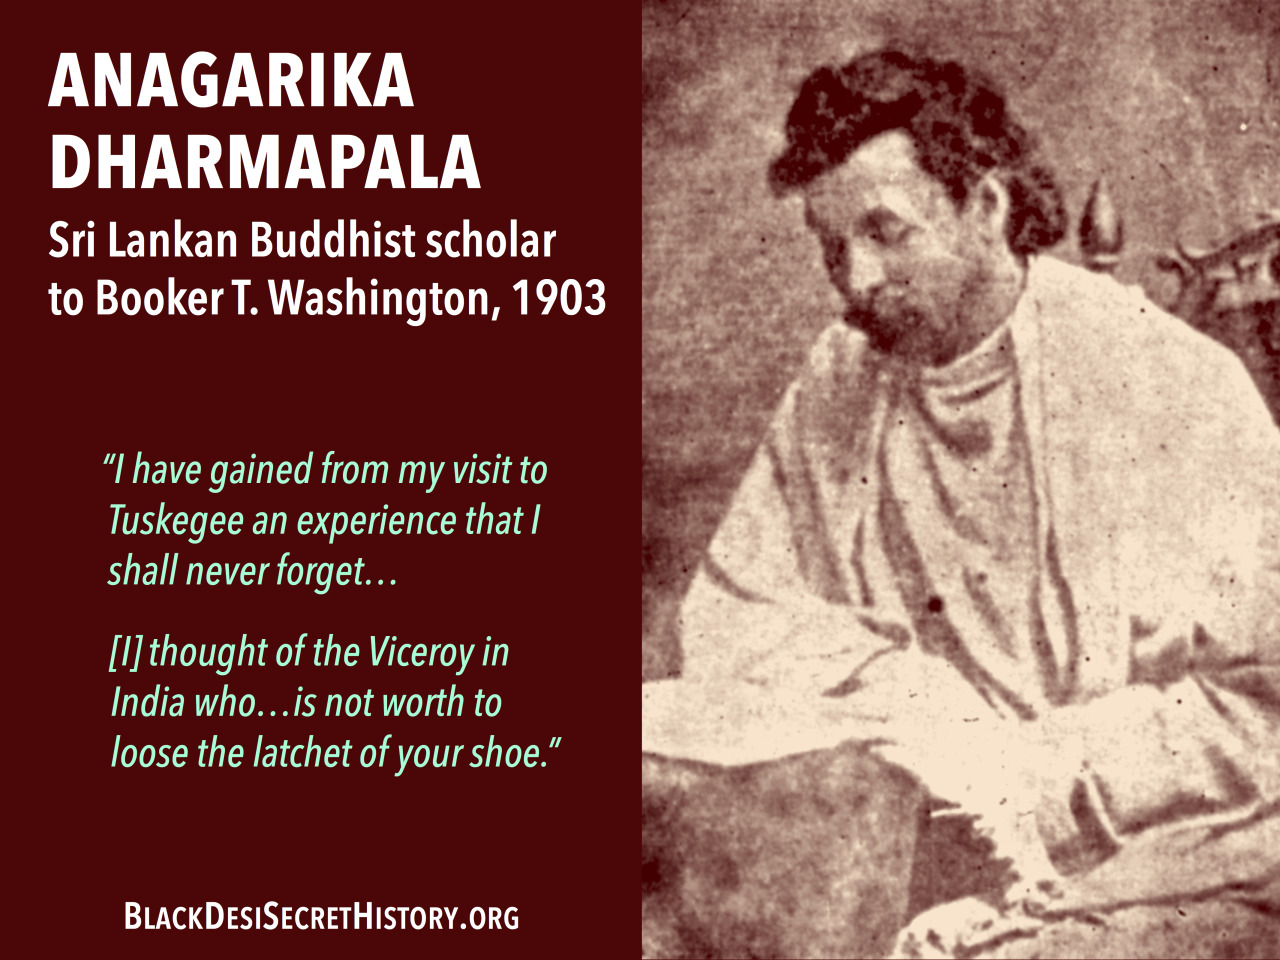 "ANAGARIKA DHARMAPALA, Sri Lankan Buddhist scholar writing to Booker T. Washington, 1903: ""I have gained from my visit to Tuskegee an experience that I shall never forget…[I] thought of the Viceroy in India who…is not worth to loose the latchet of your shoe."""